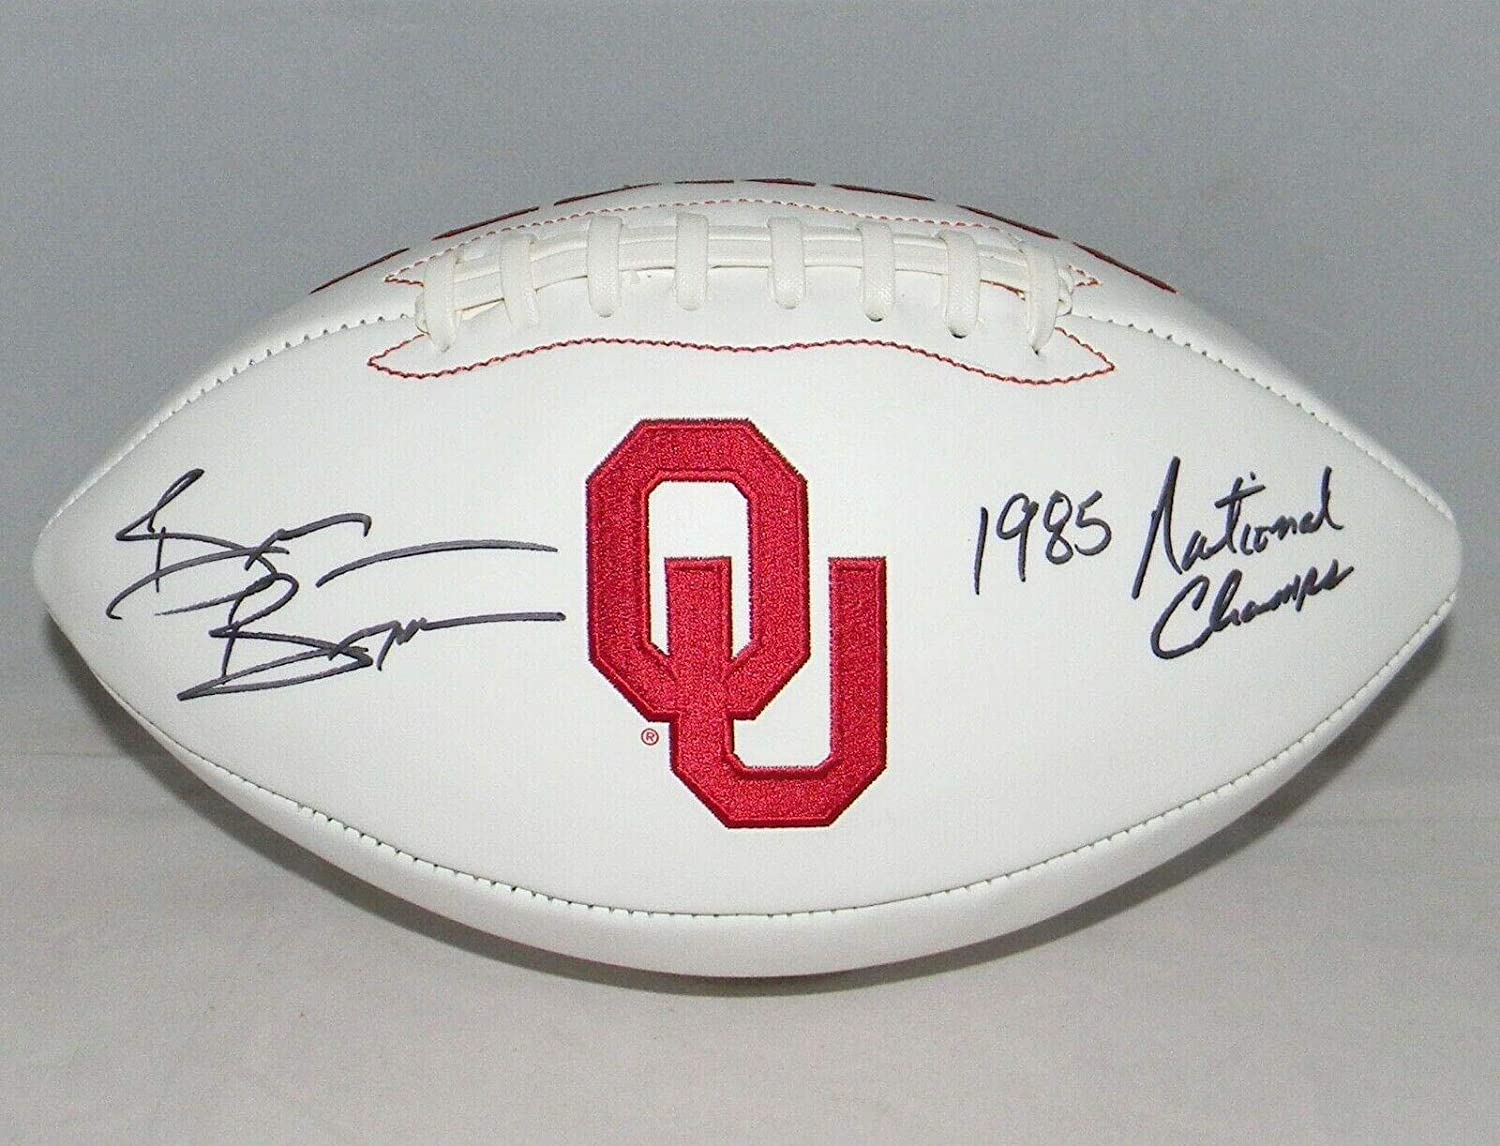 Brian Bosworth Autographed Signed Oklahoma Sooners Football W/ 1985 Champs - JSA Certified - Autographed College Footballs